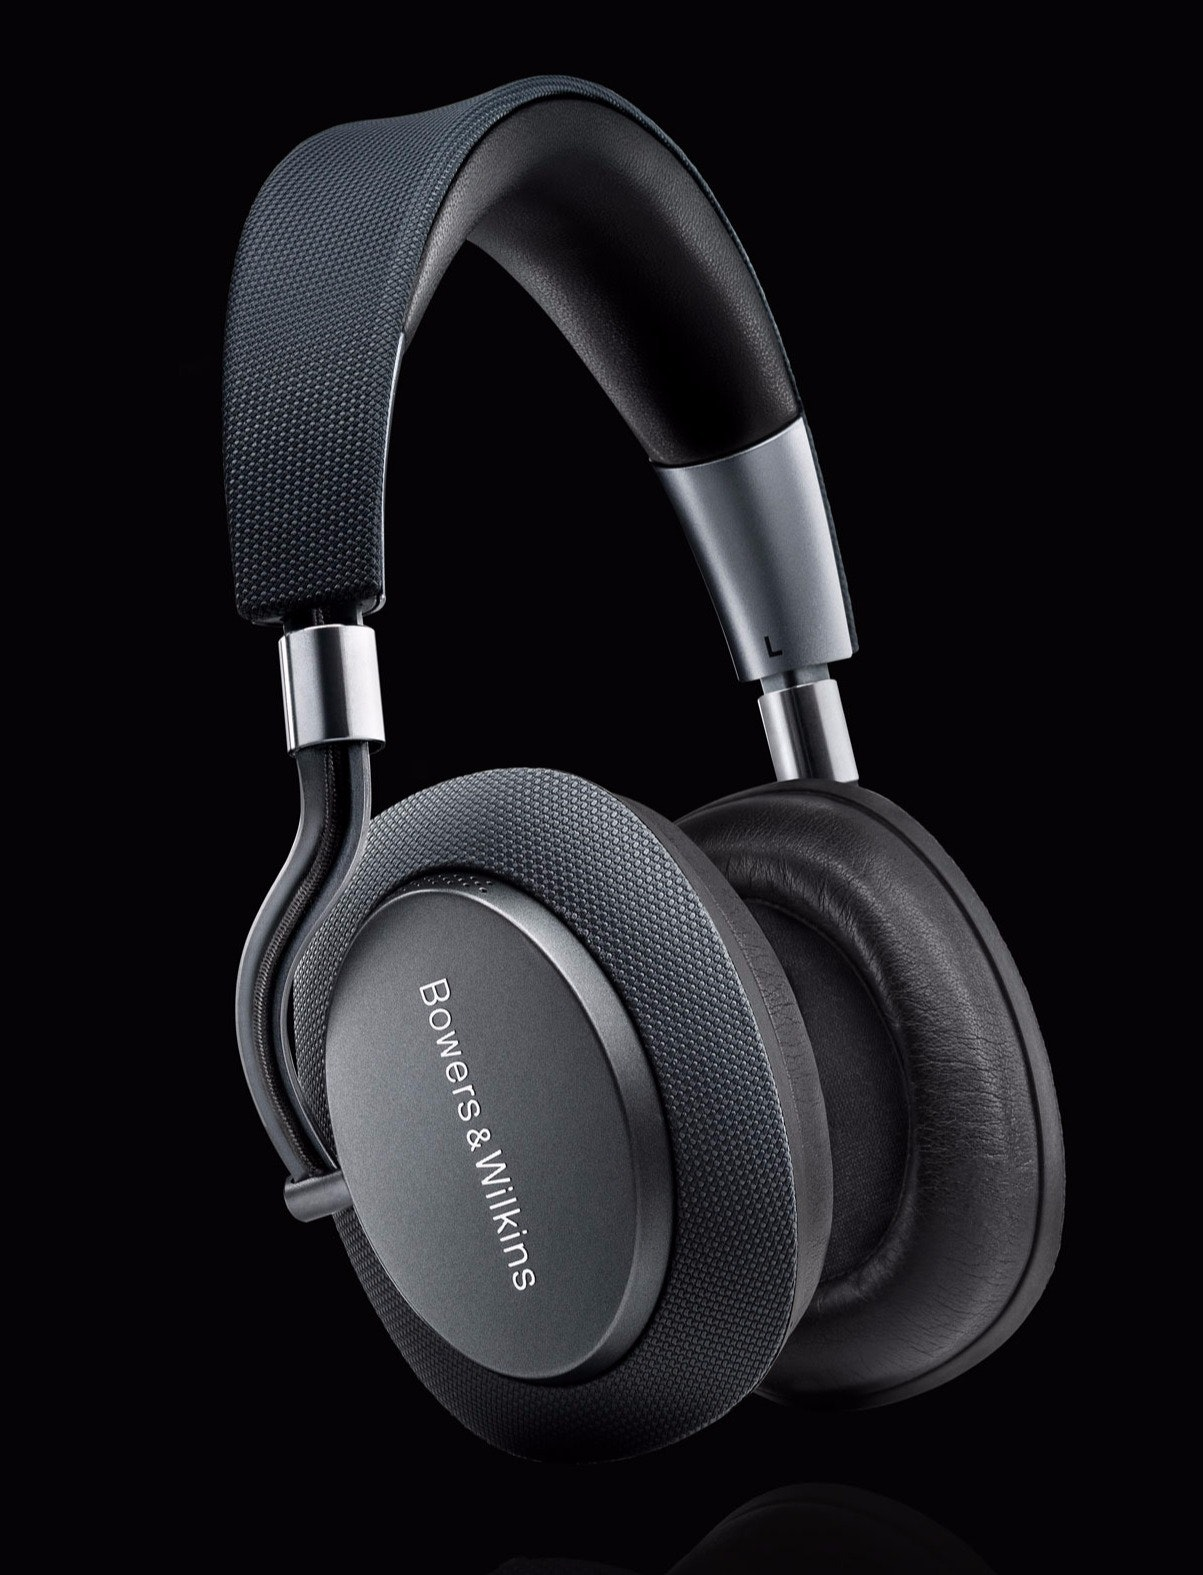 Bowers & Wilkins PX Wireless Noise Cancelling Headphones